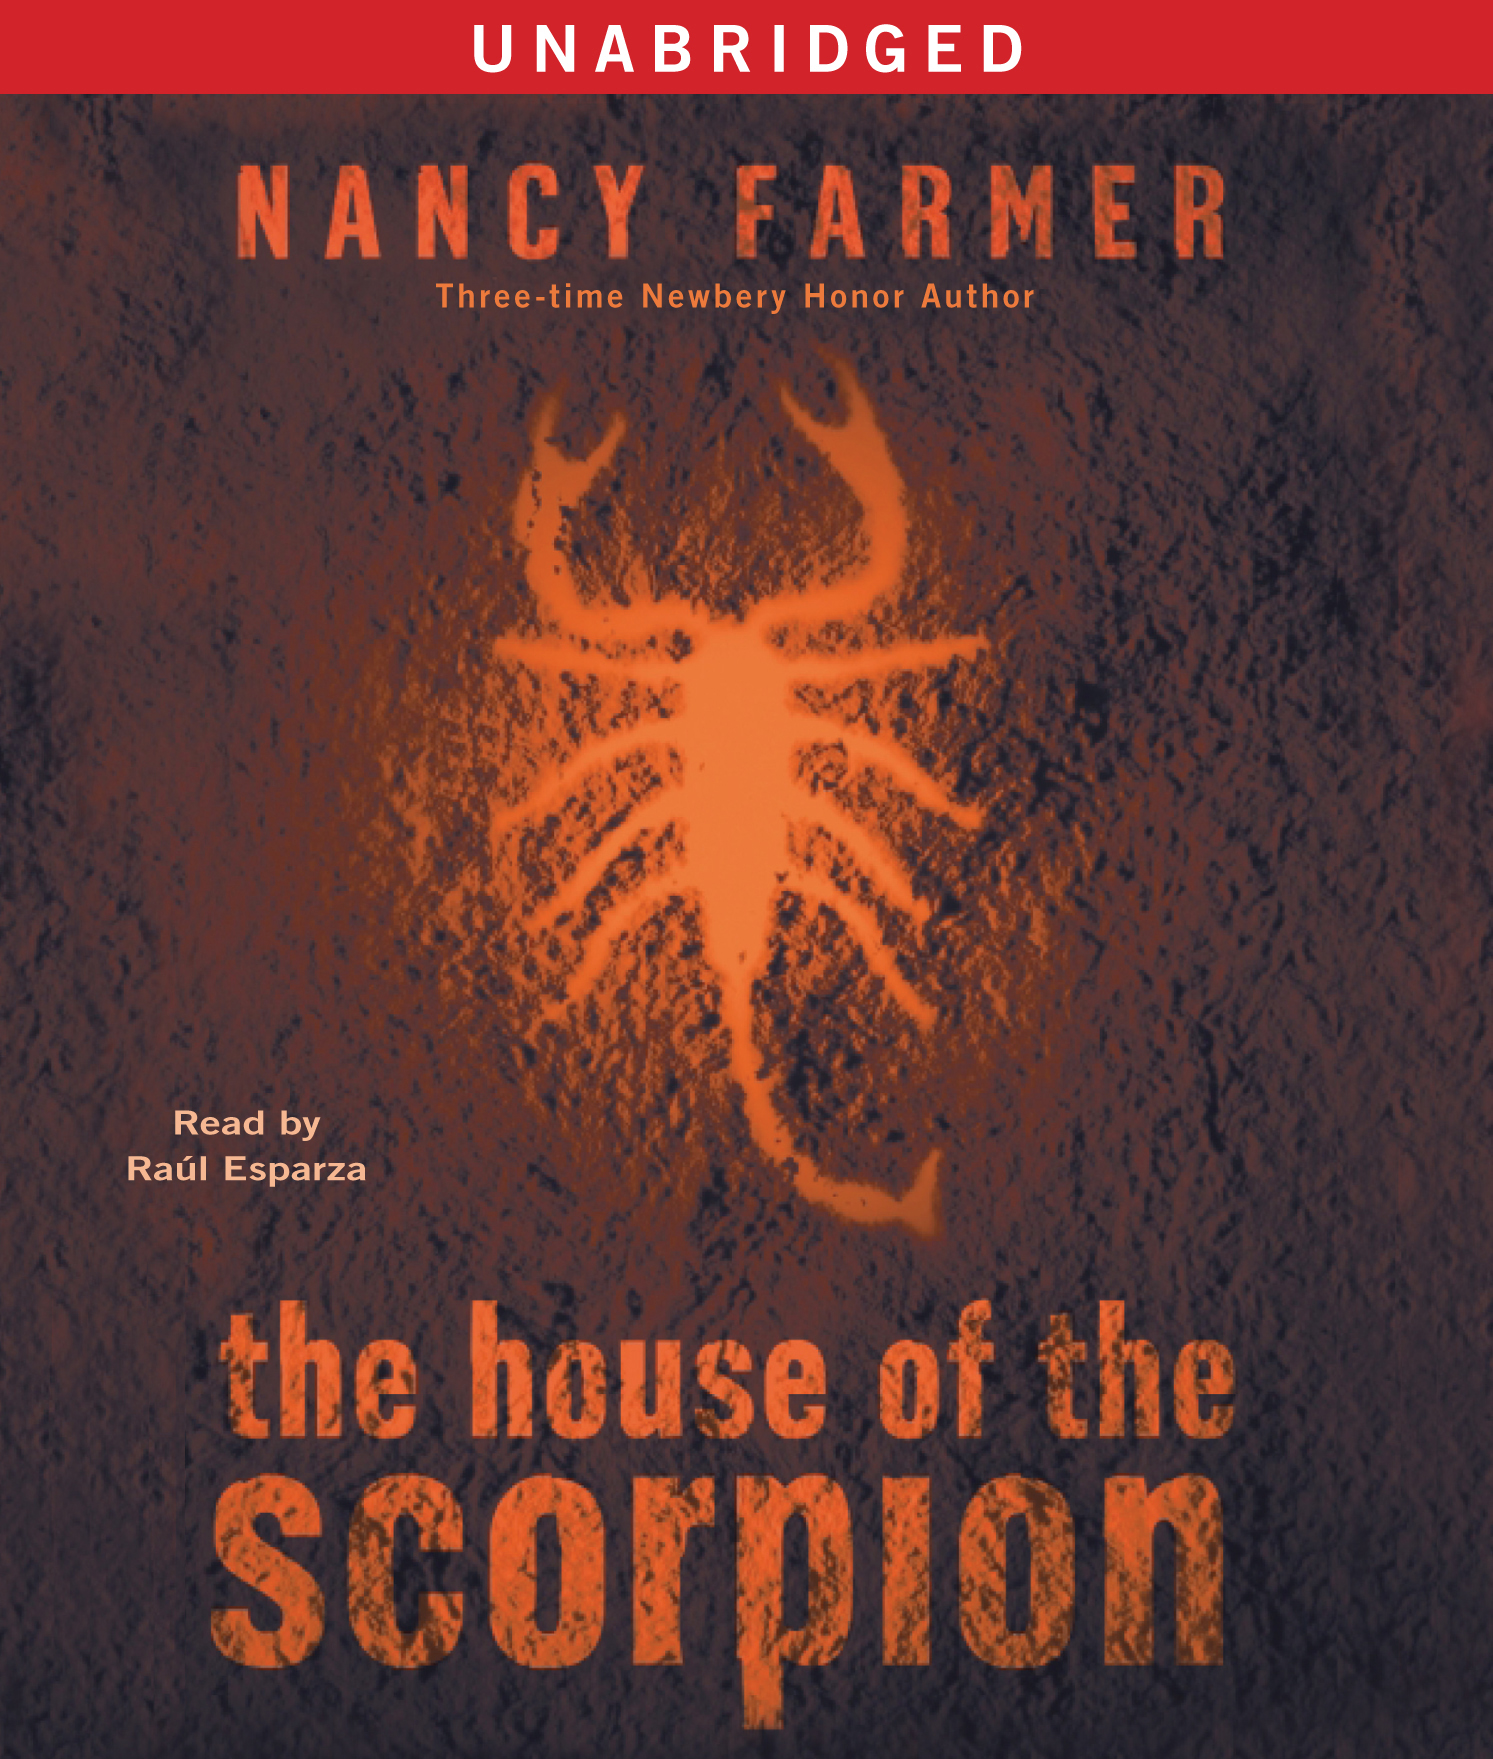 The house of the scorpion 9780743572477 hr